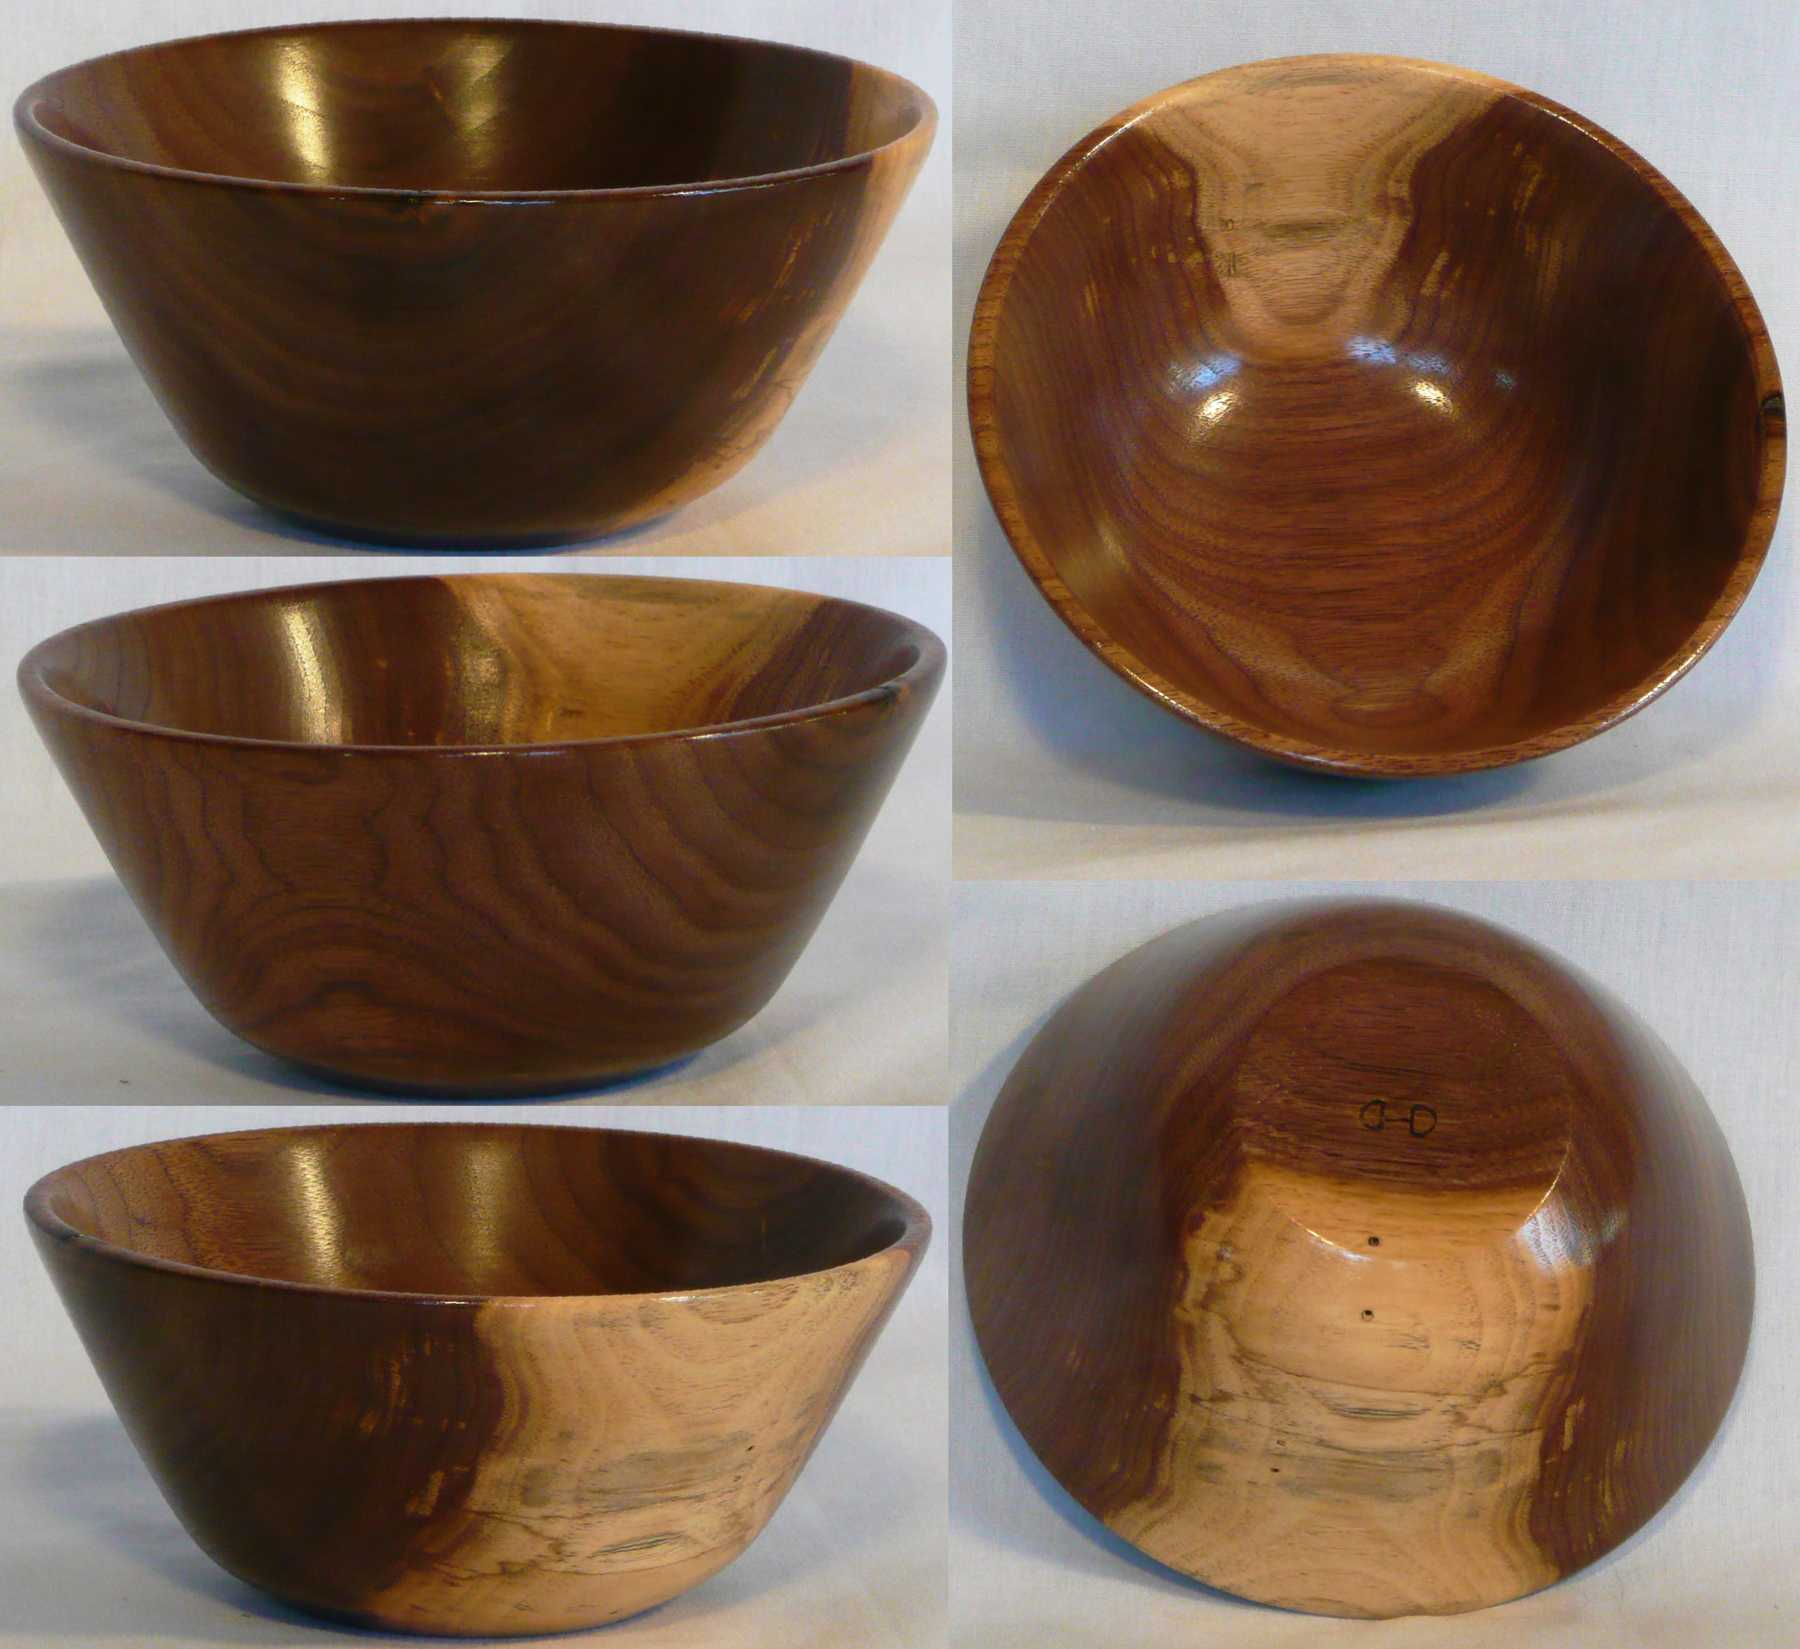 Walnut bowl hand turned by Cynthia D. Haney.